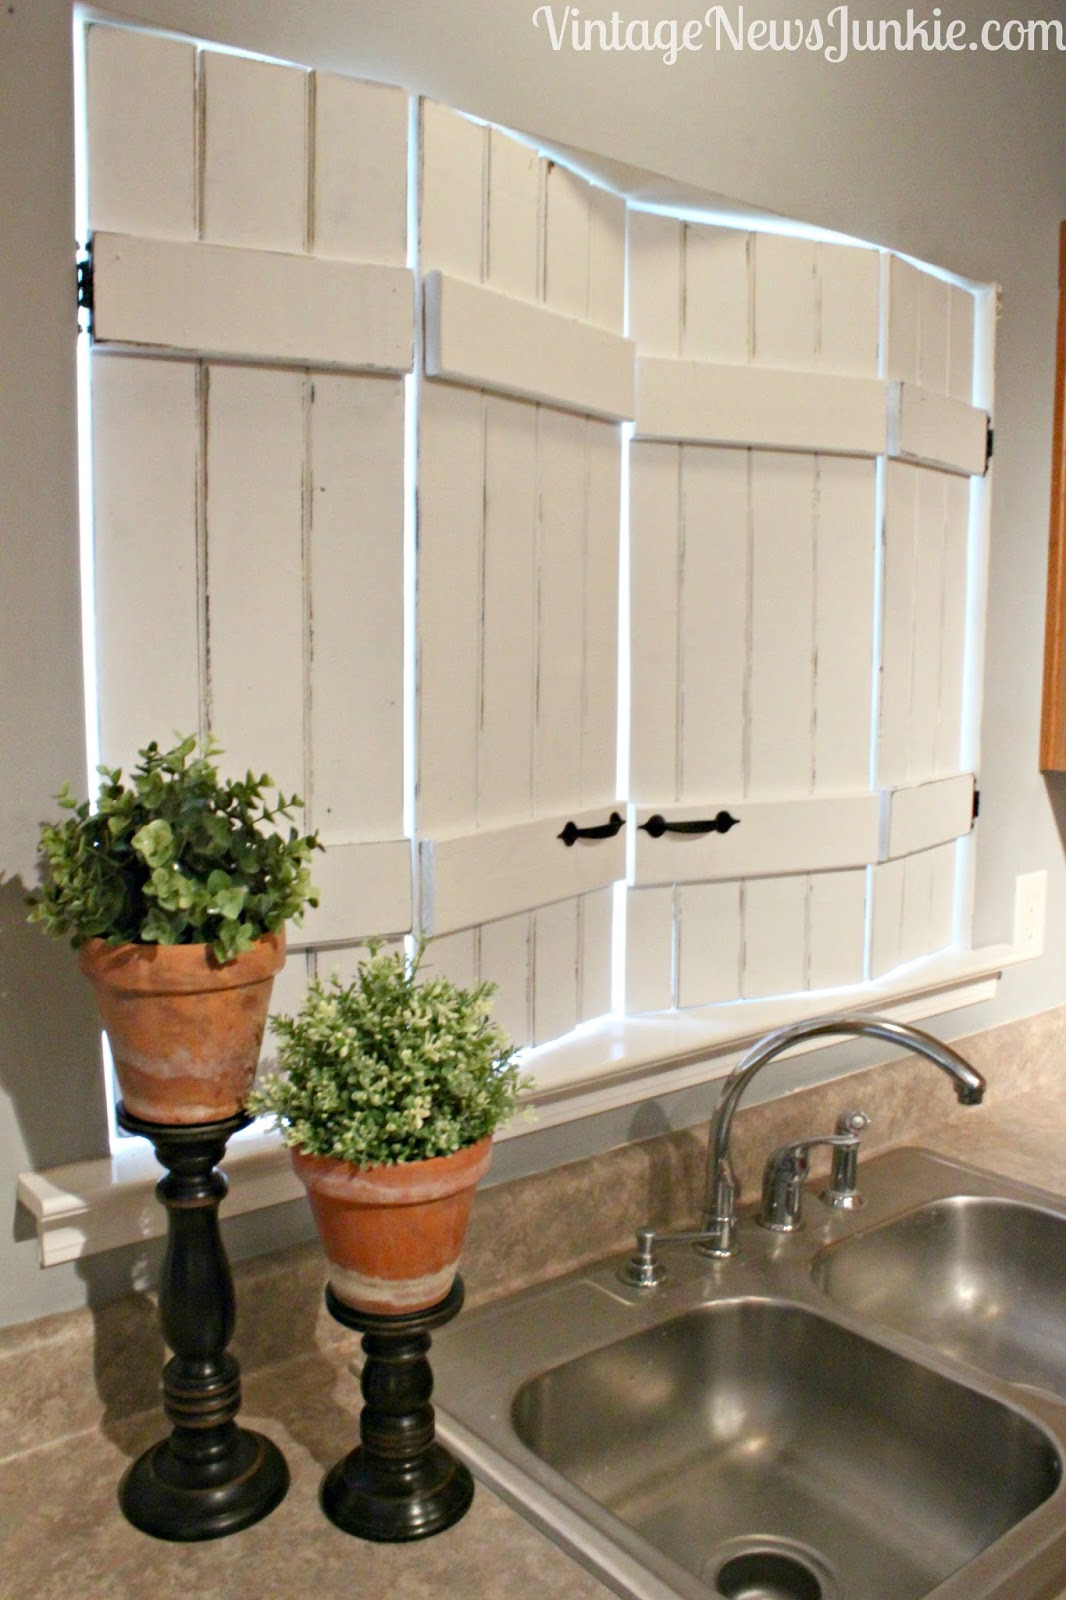 I Love That Junk: Make your own charming window shutters ...